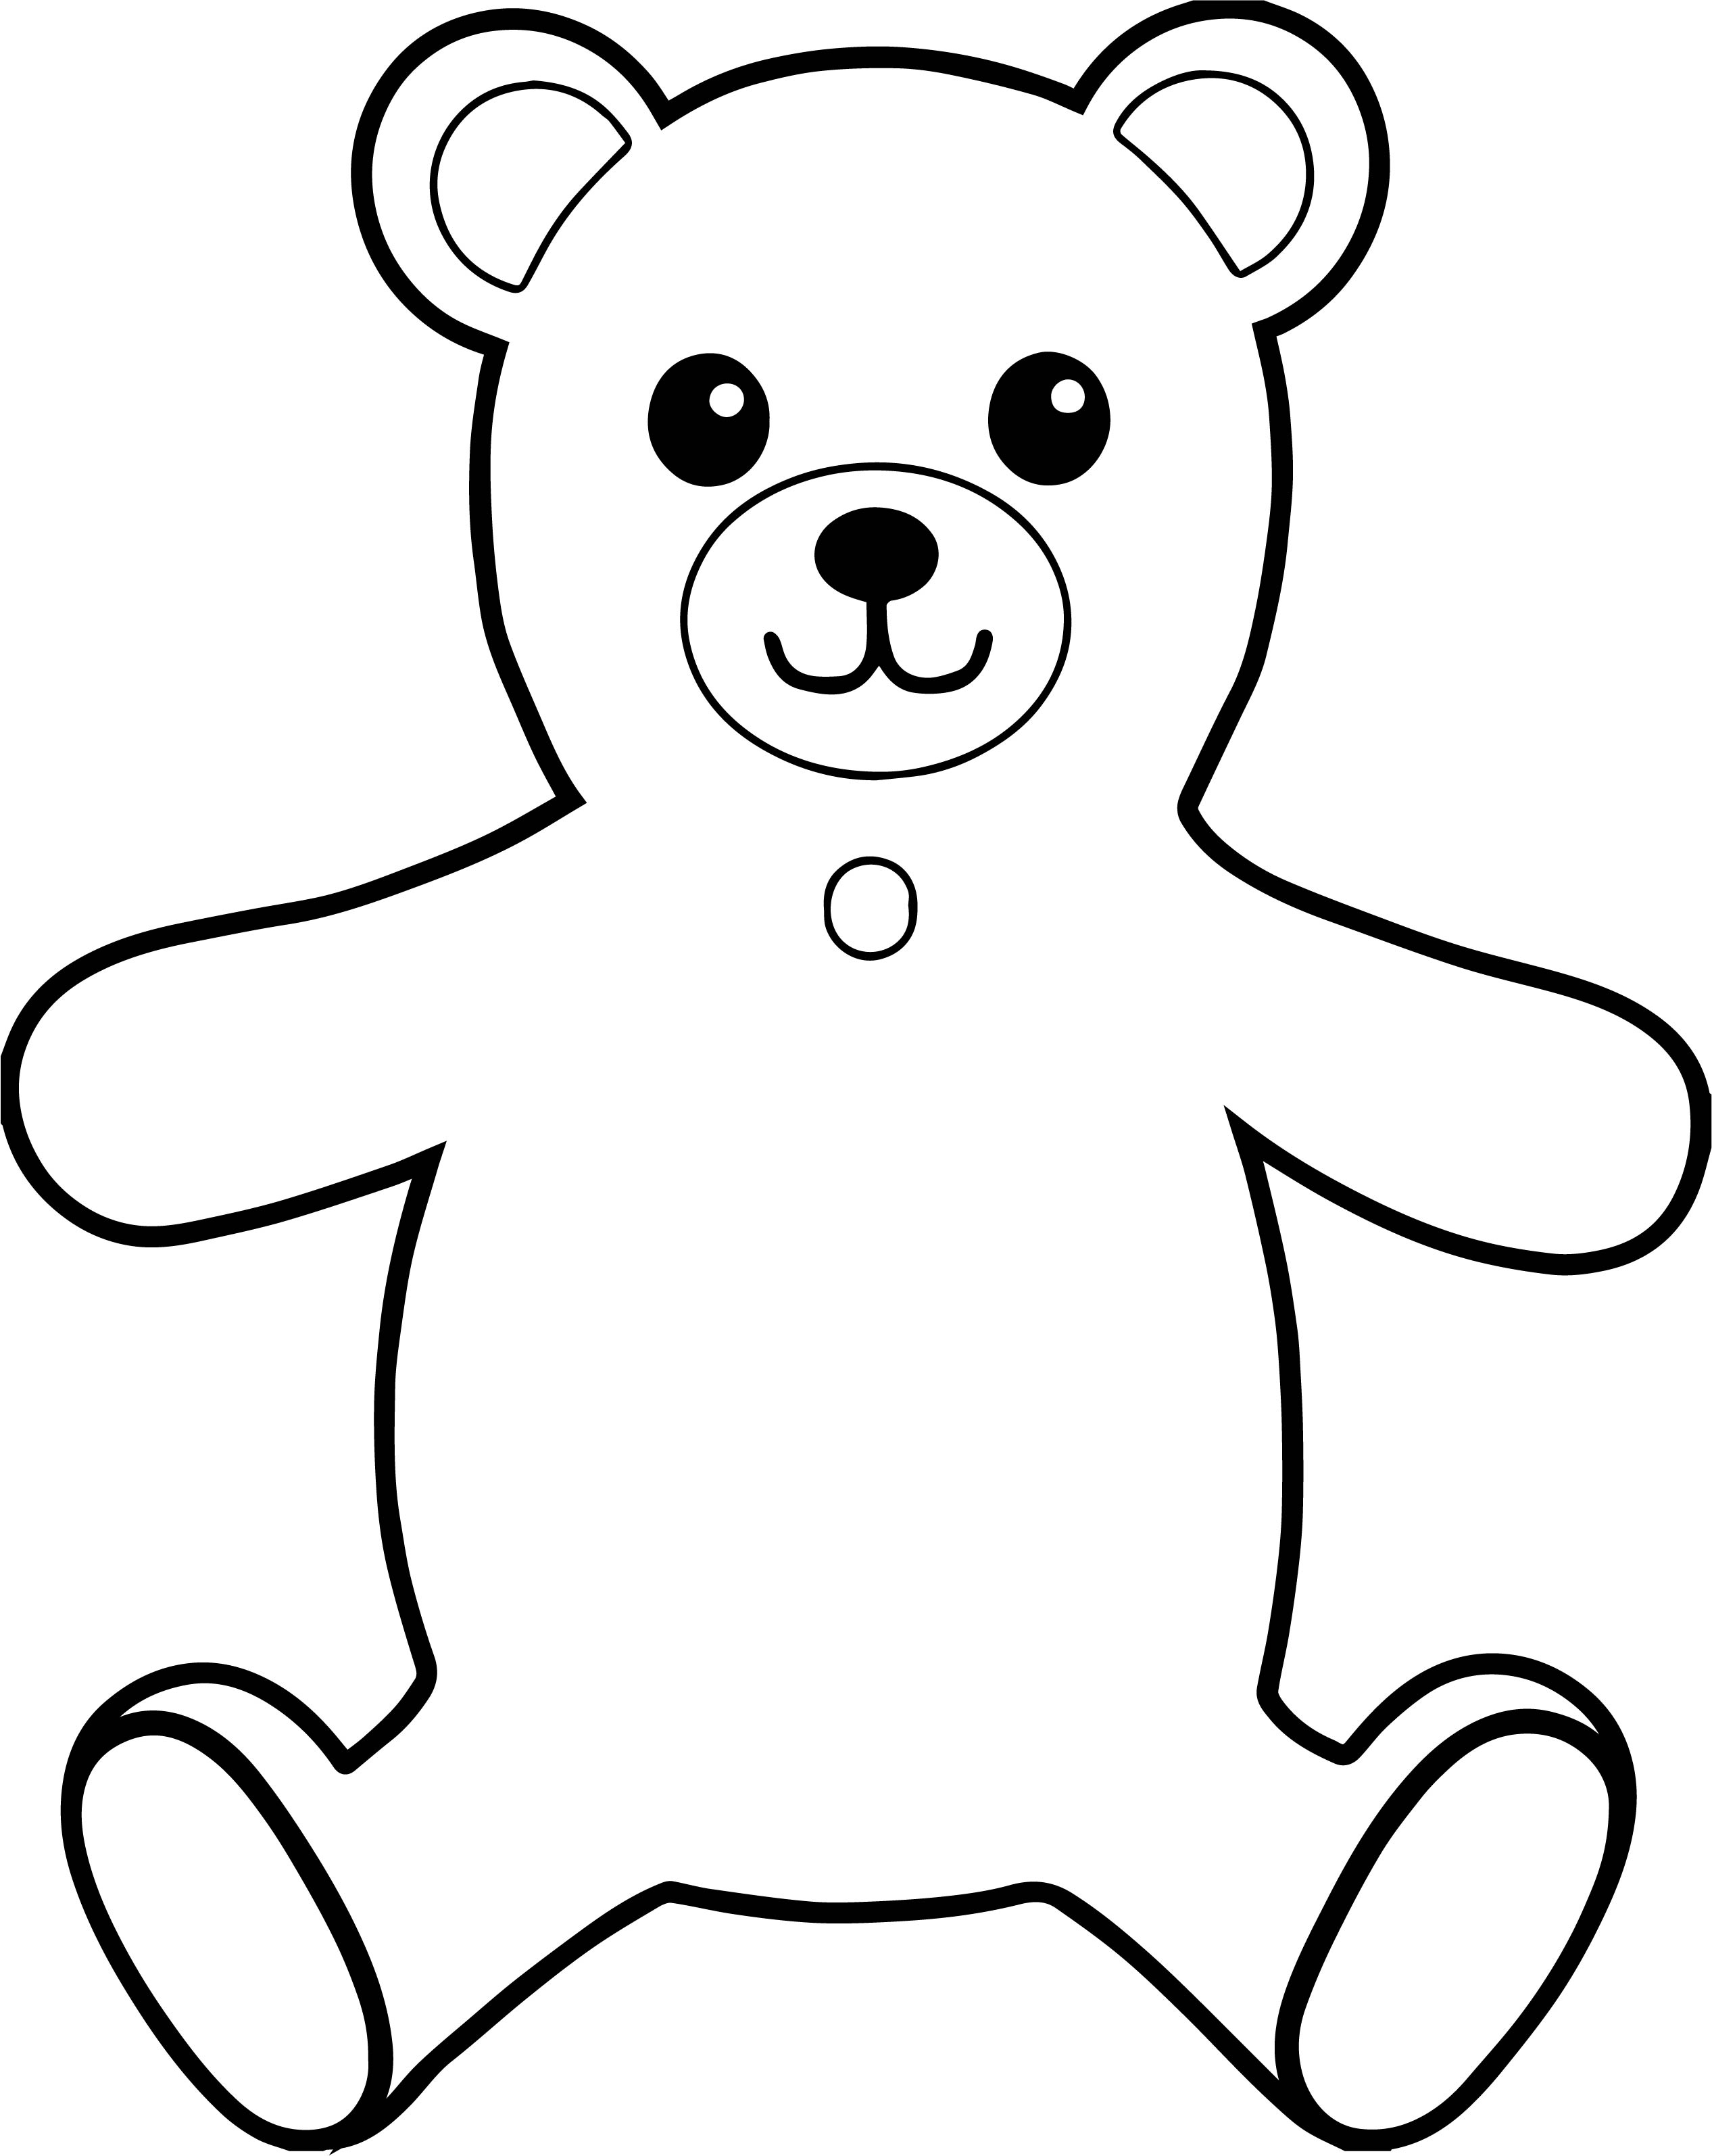 Bear Front View Hug Coloring Page